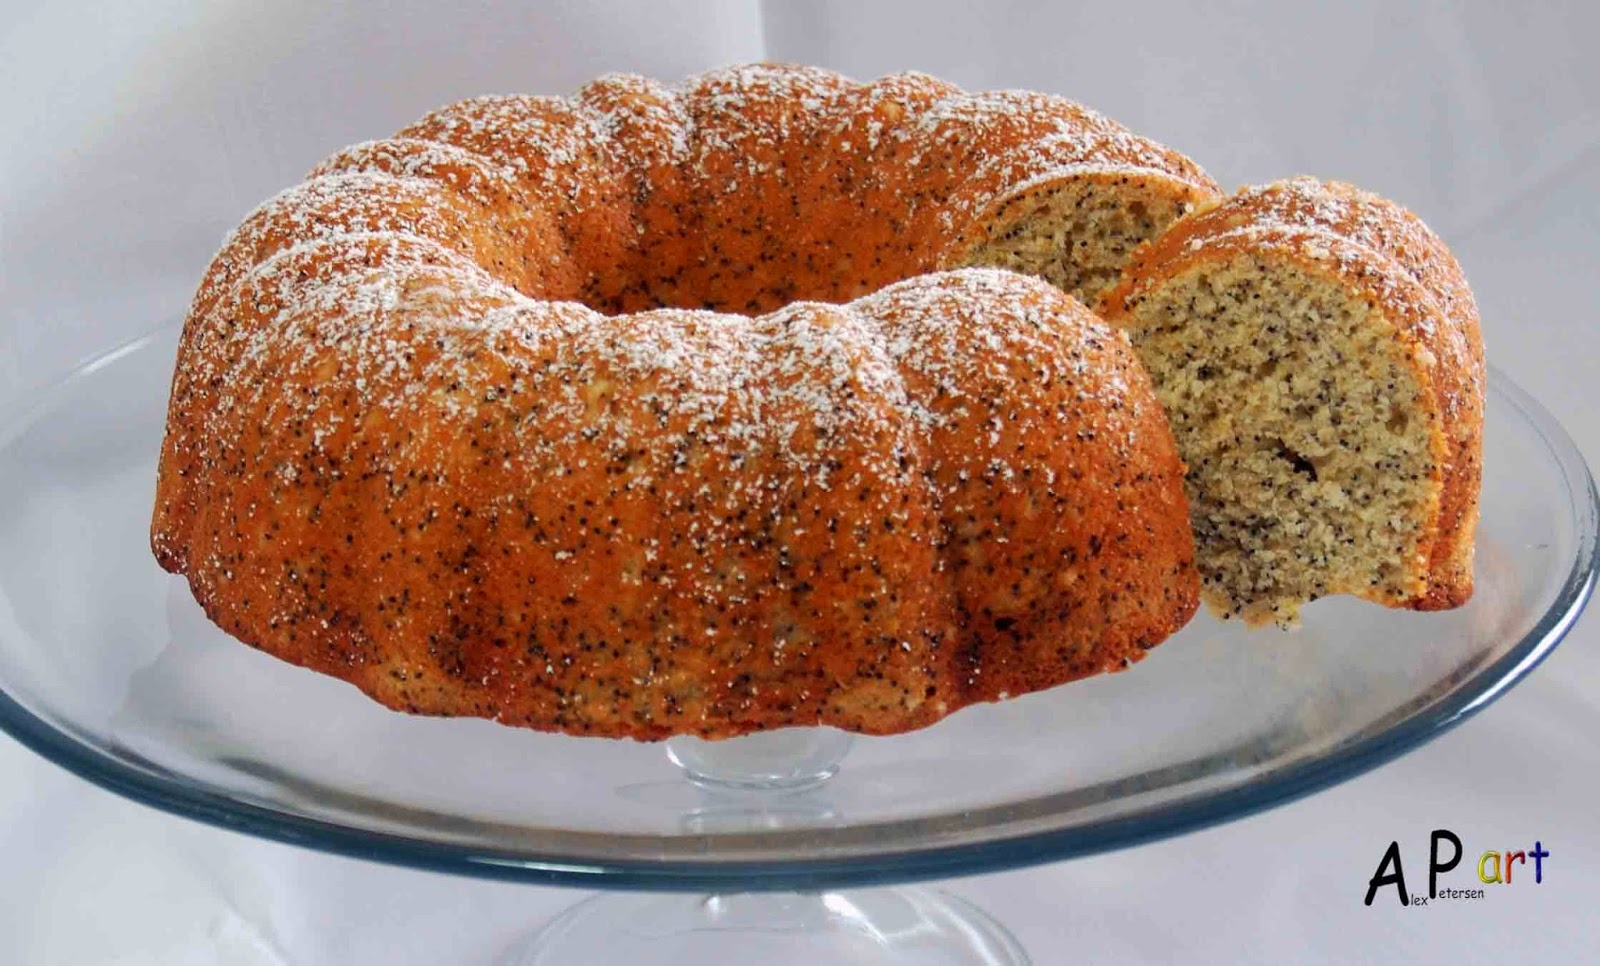 Alex the Contemporary Culinarian: Lime Poppy Seed Bundt Cake